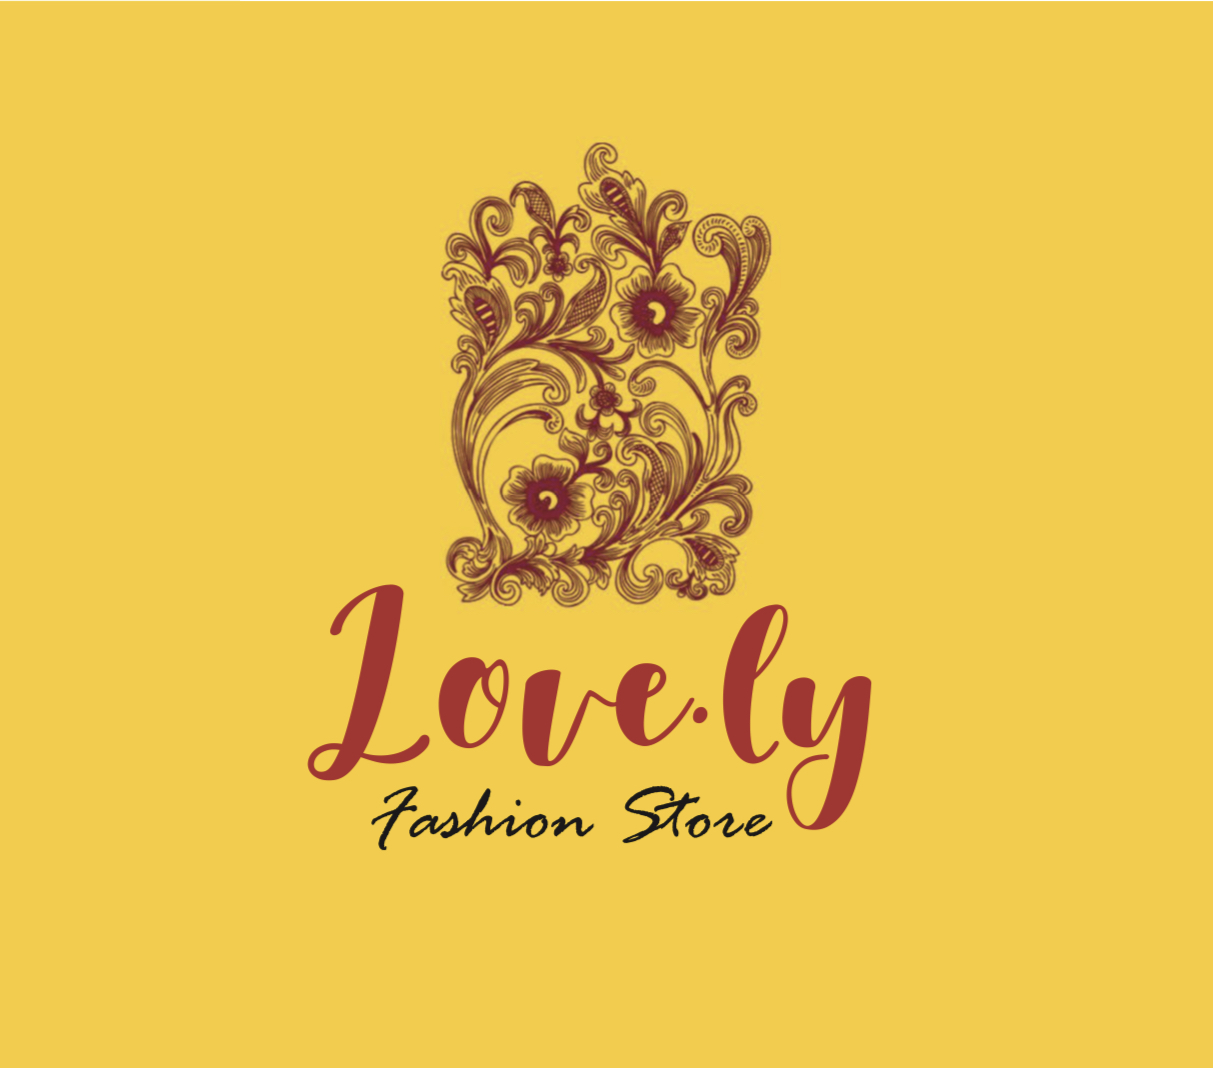 Love.ly fashion Store